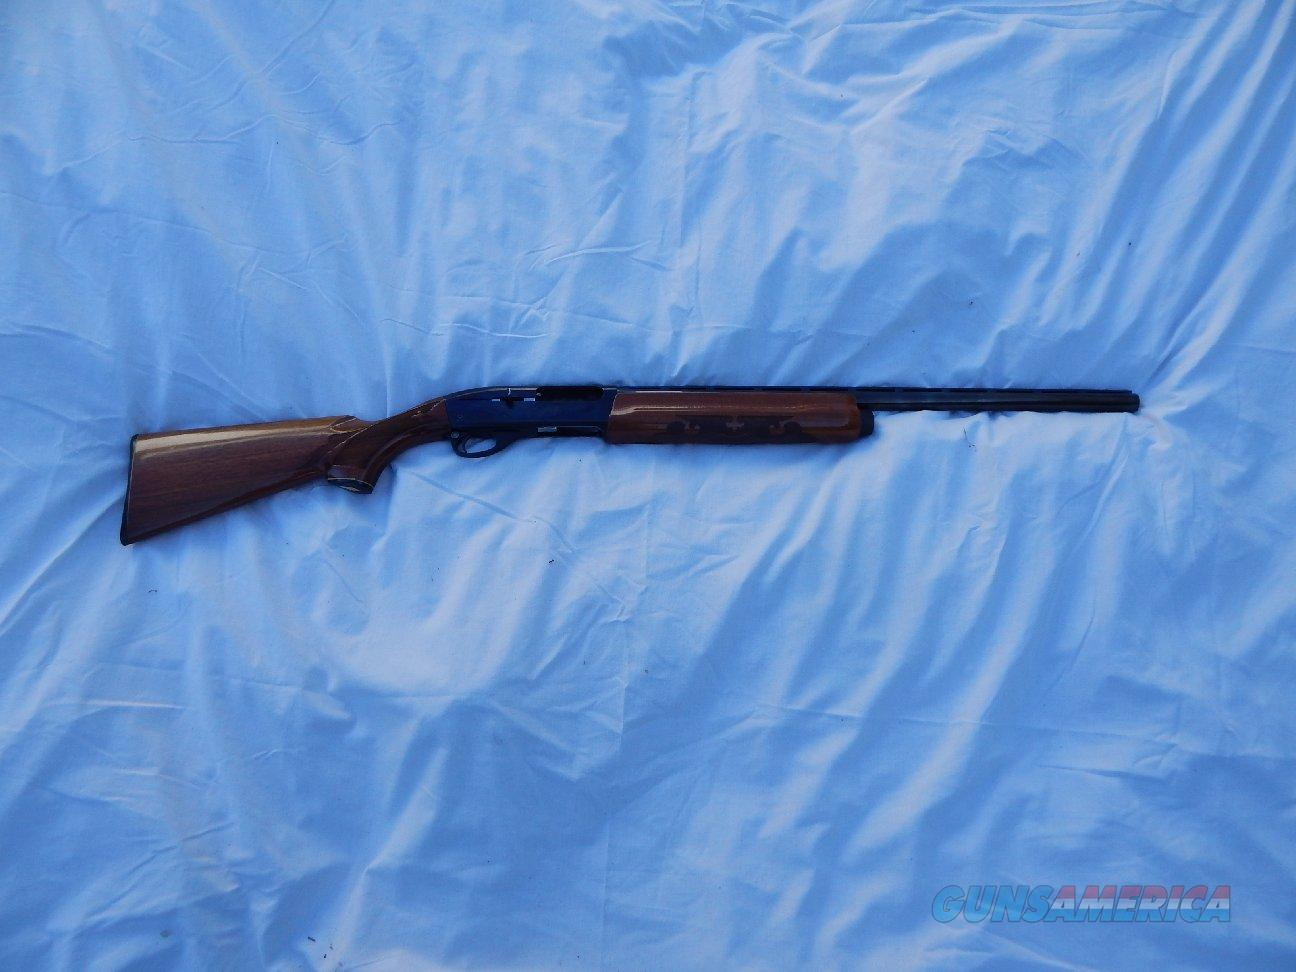 Remington 1100 12G - Rem Choke - 2 3/4 shells  Guns > Shotguns > Remington Shotguns  > Autoloaders > Trap/Skeet